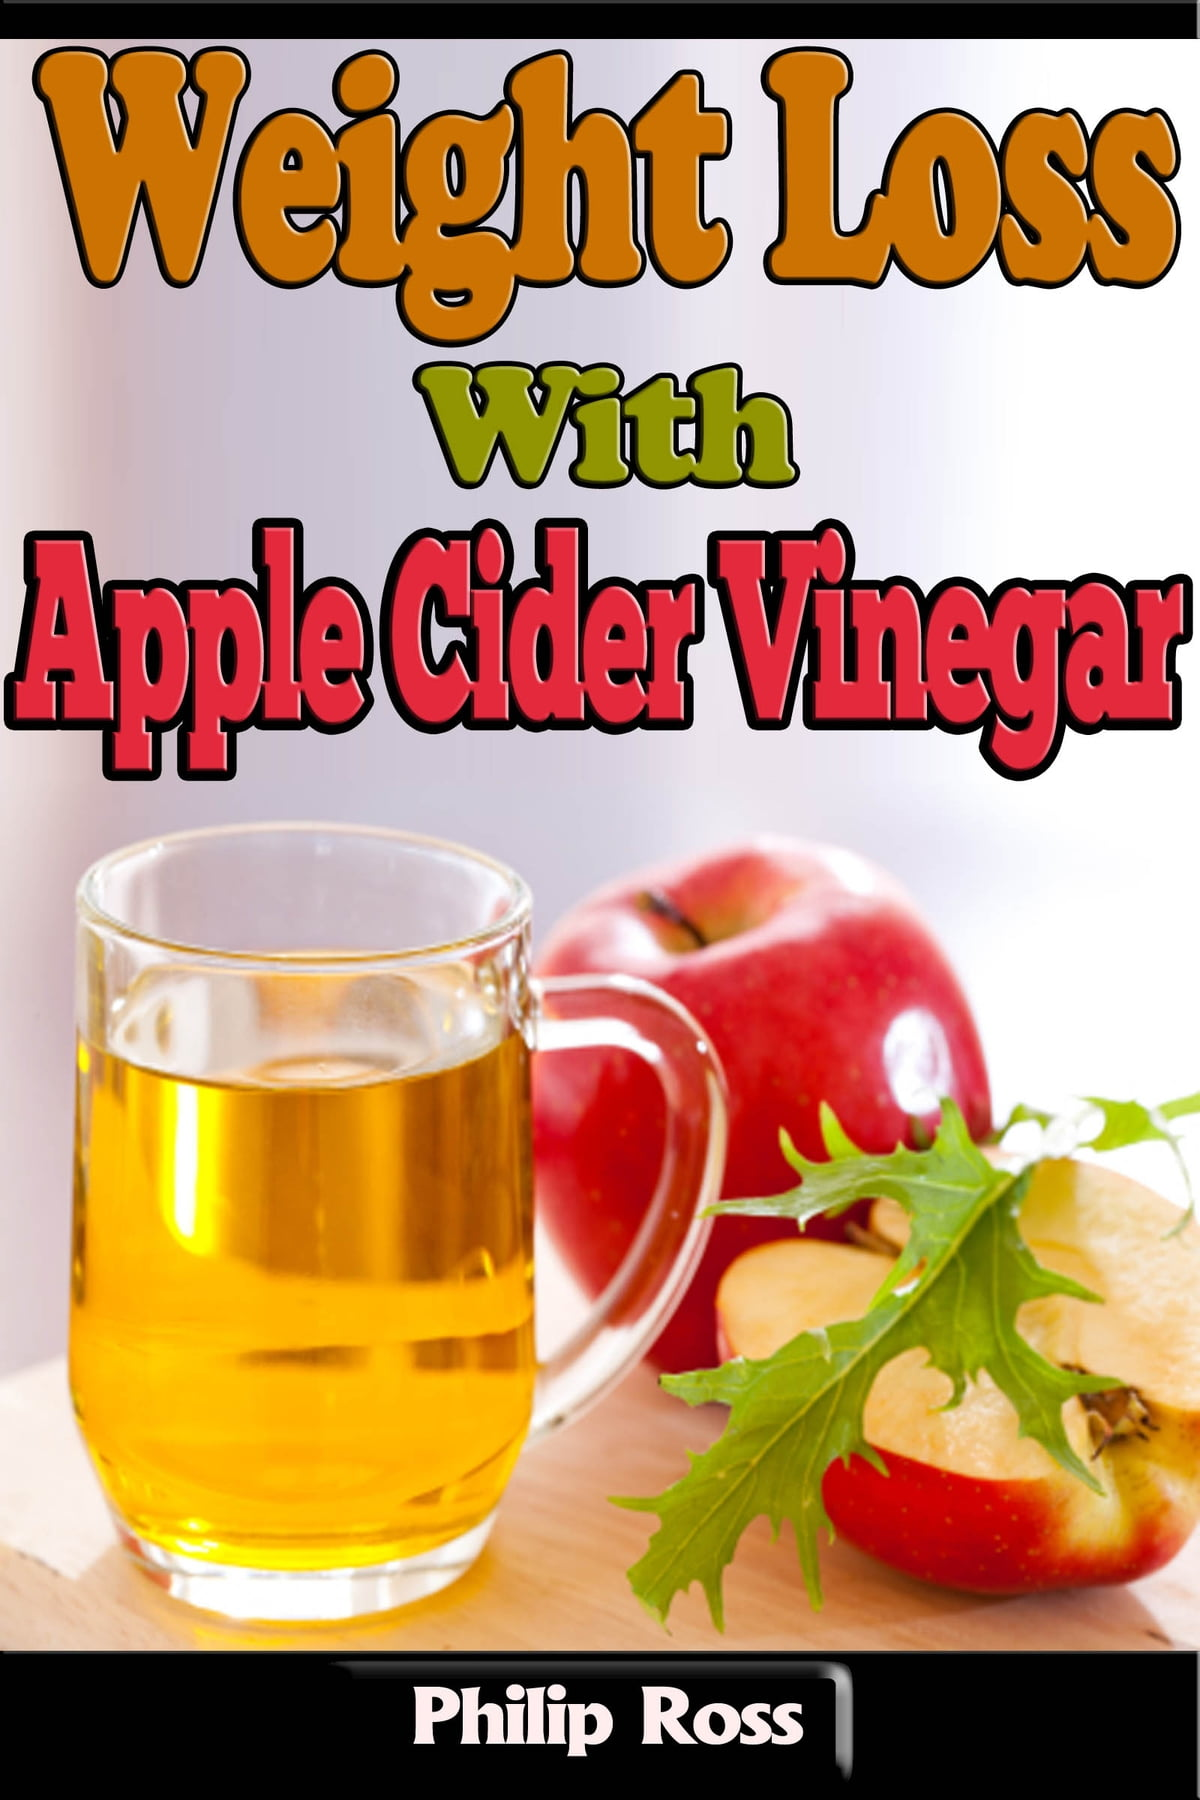 weight-loss-with-apple-cider-vinegar.jpg